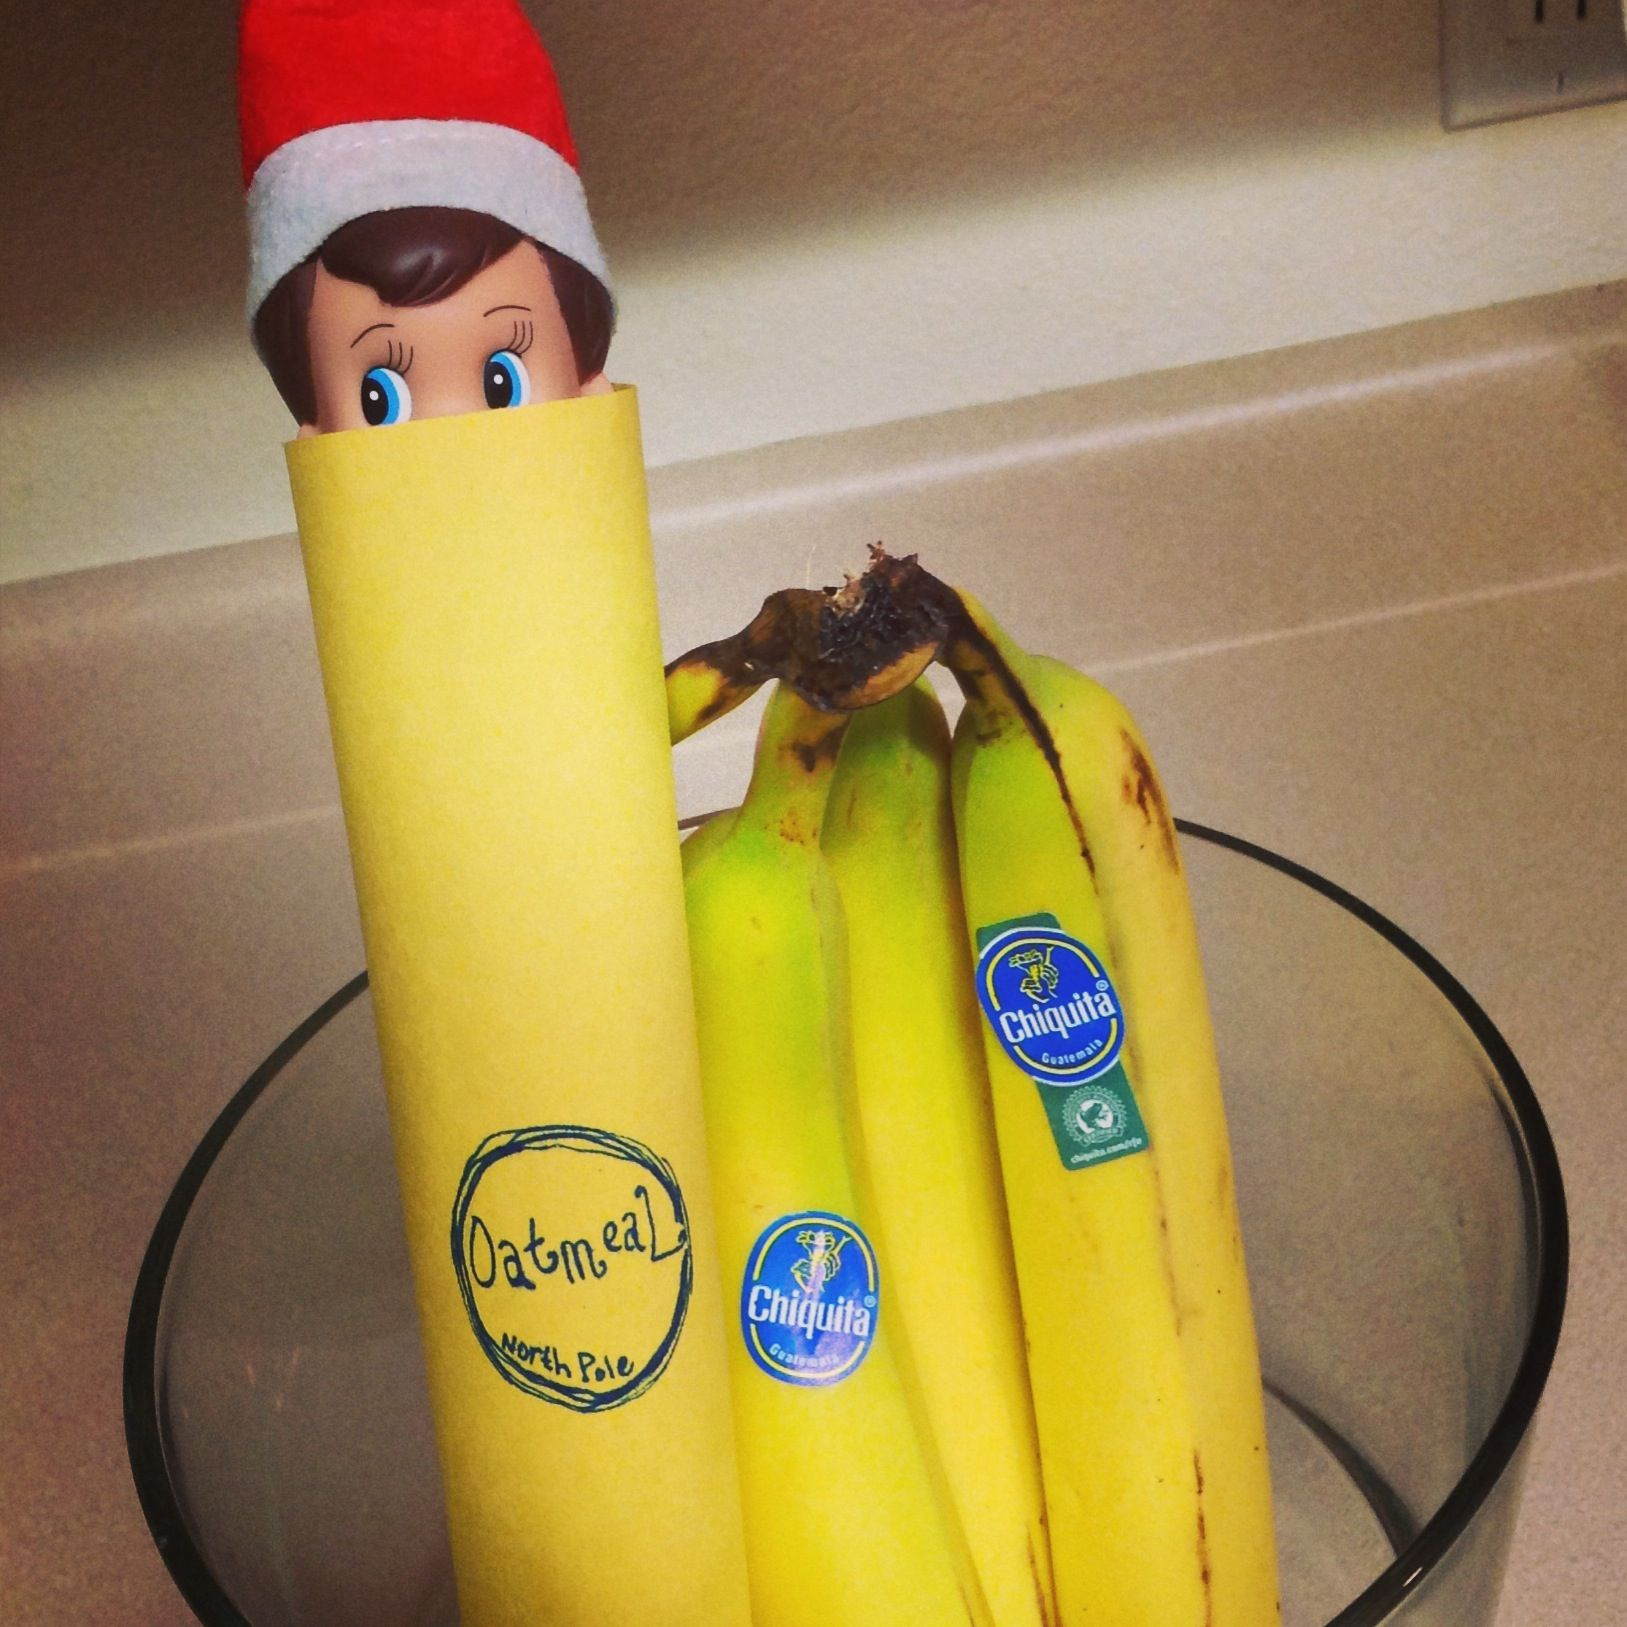 Going Bananas Elf On The Shelf Oatmeal The Elf In 2018 Elf On